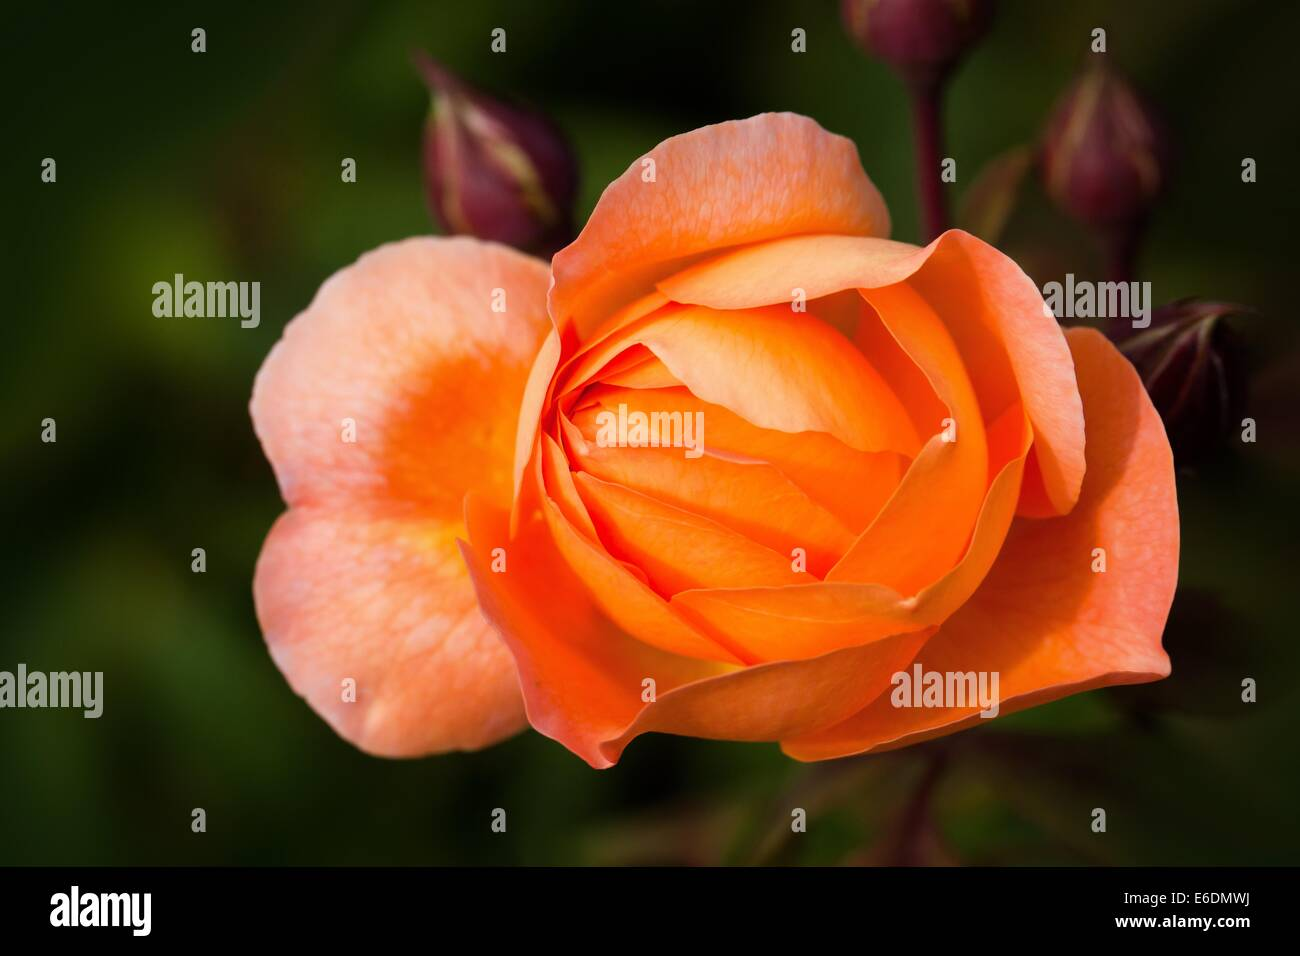 rose rose family rosaceae composites flowers bud - Stock Image